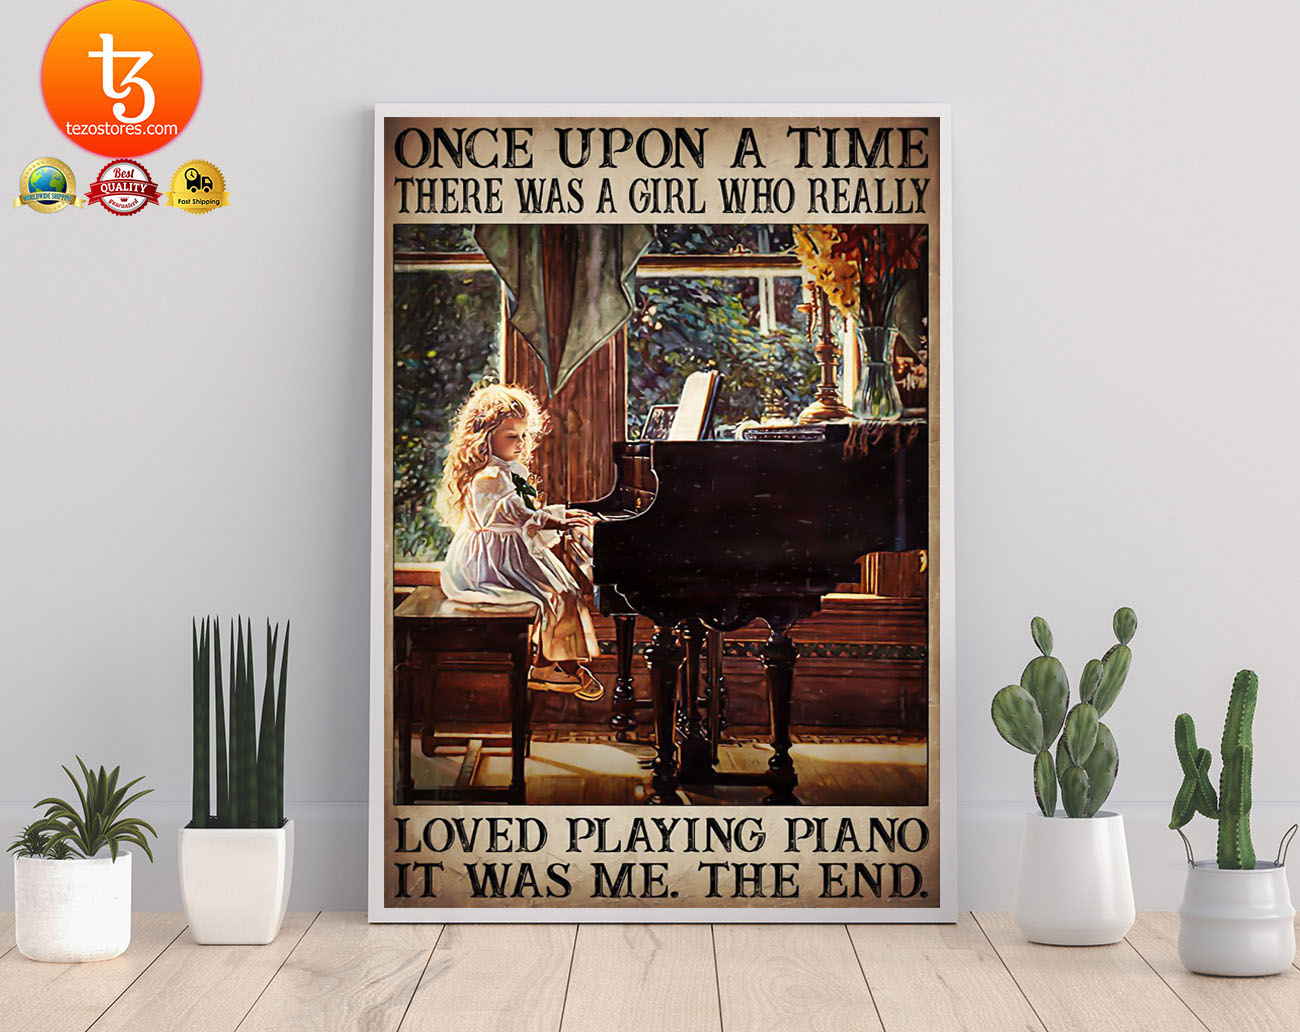 Once upon a time there was a girl who really loved playing piano poster 22